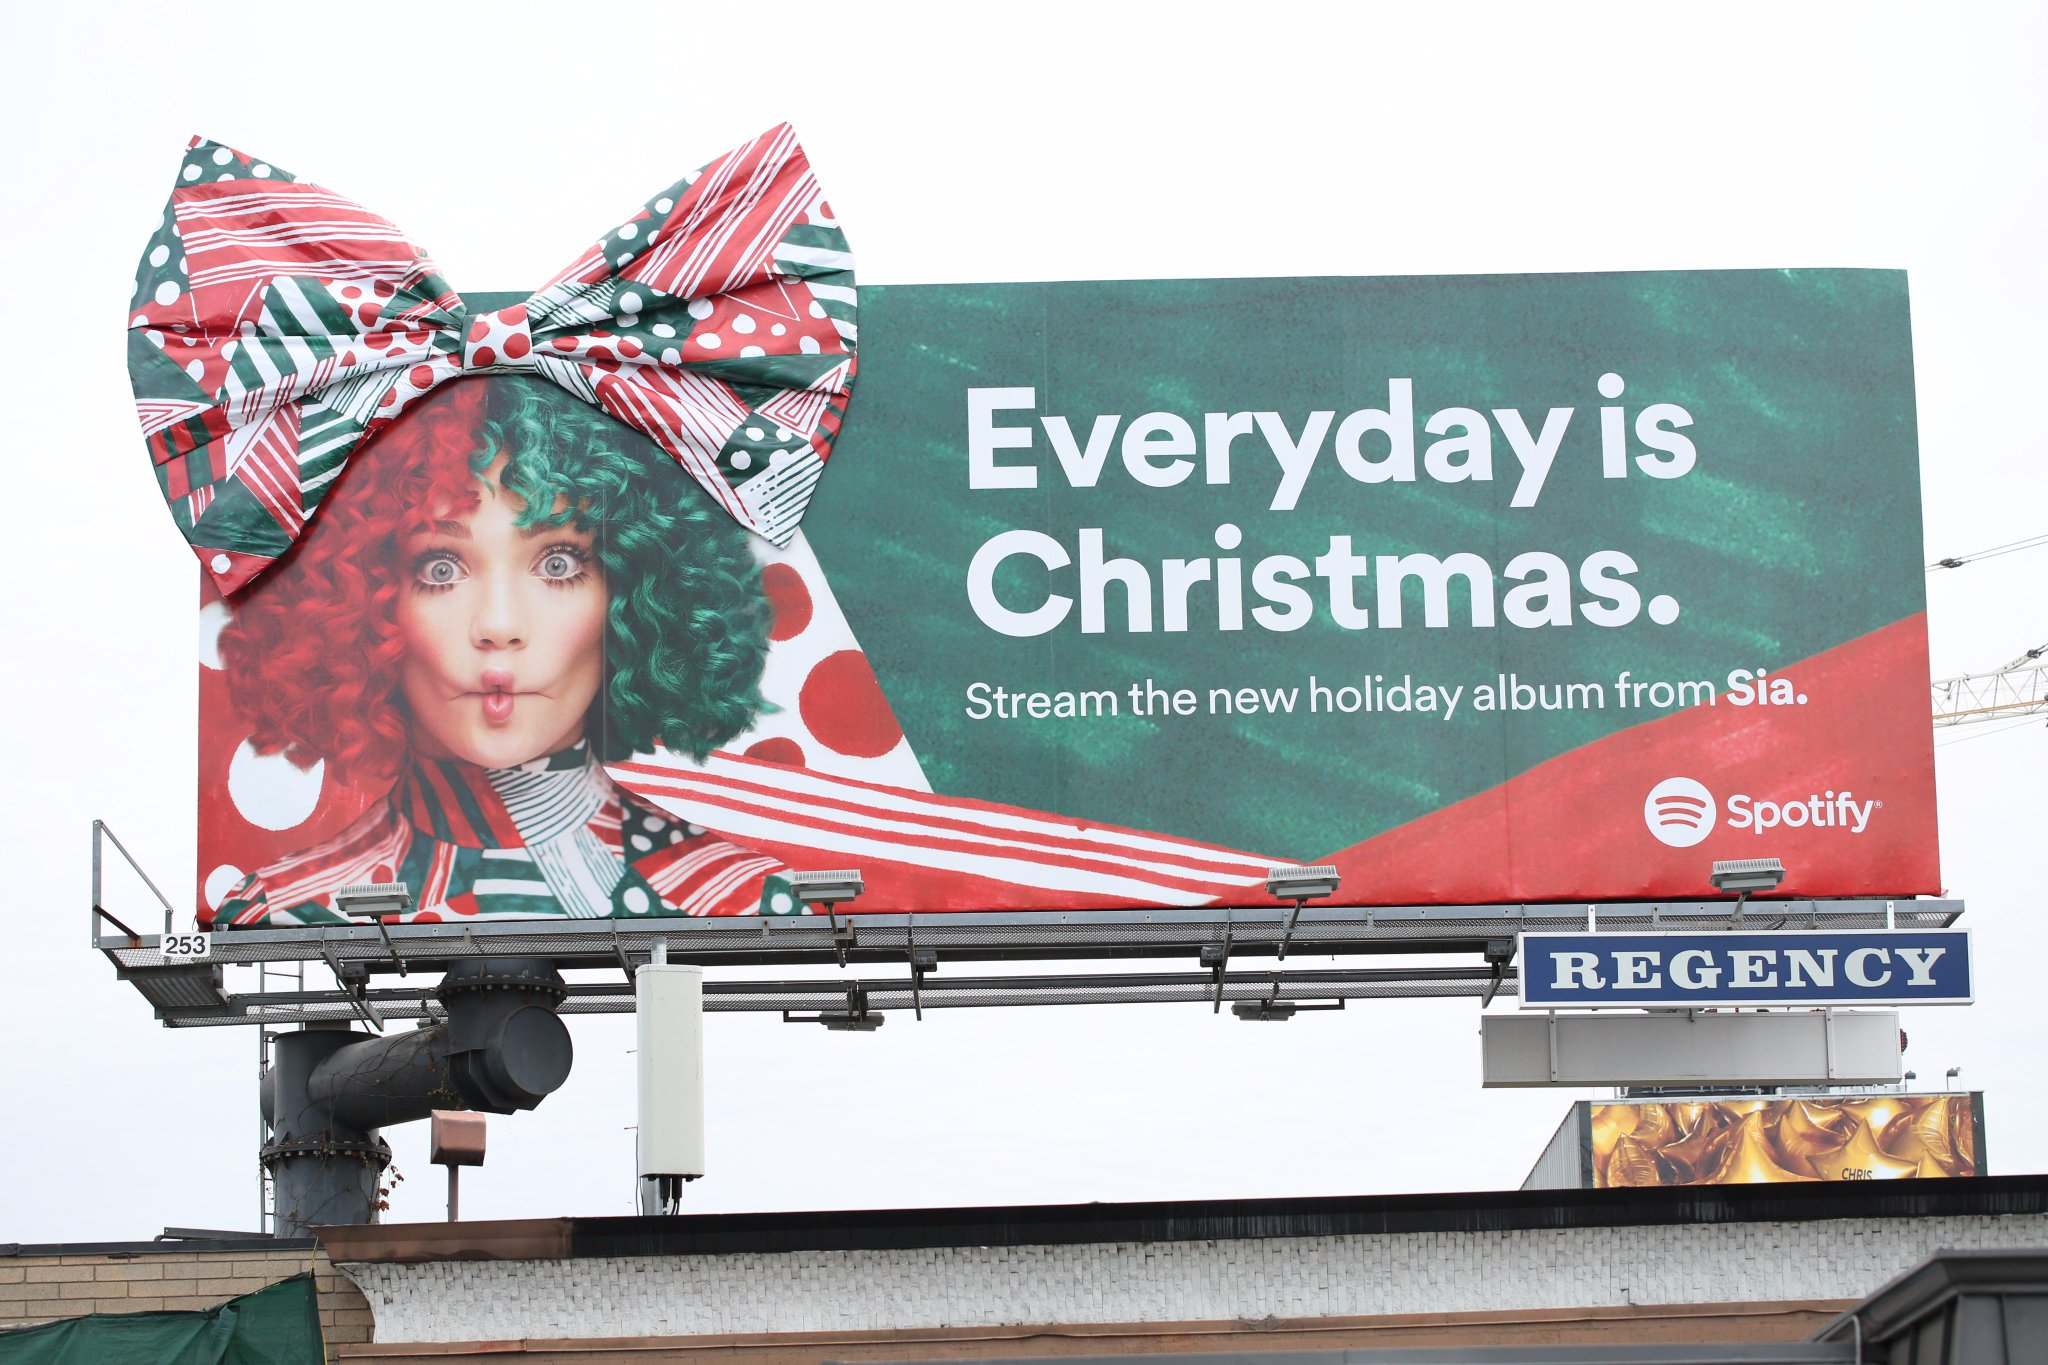 Feel the holiday cheer with 'Everyday Is Christmas' on @Spotify https://t.co/0oFa2Rl1yd ����  - Team Sia https://t.co/HkEuIYSuI3